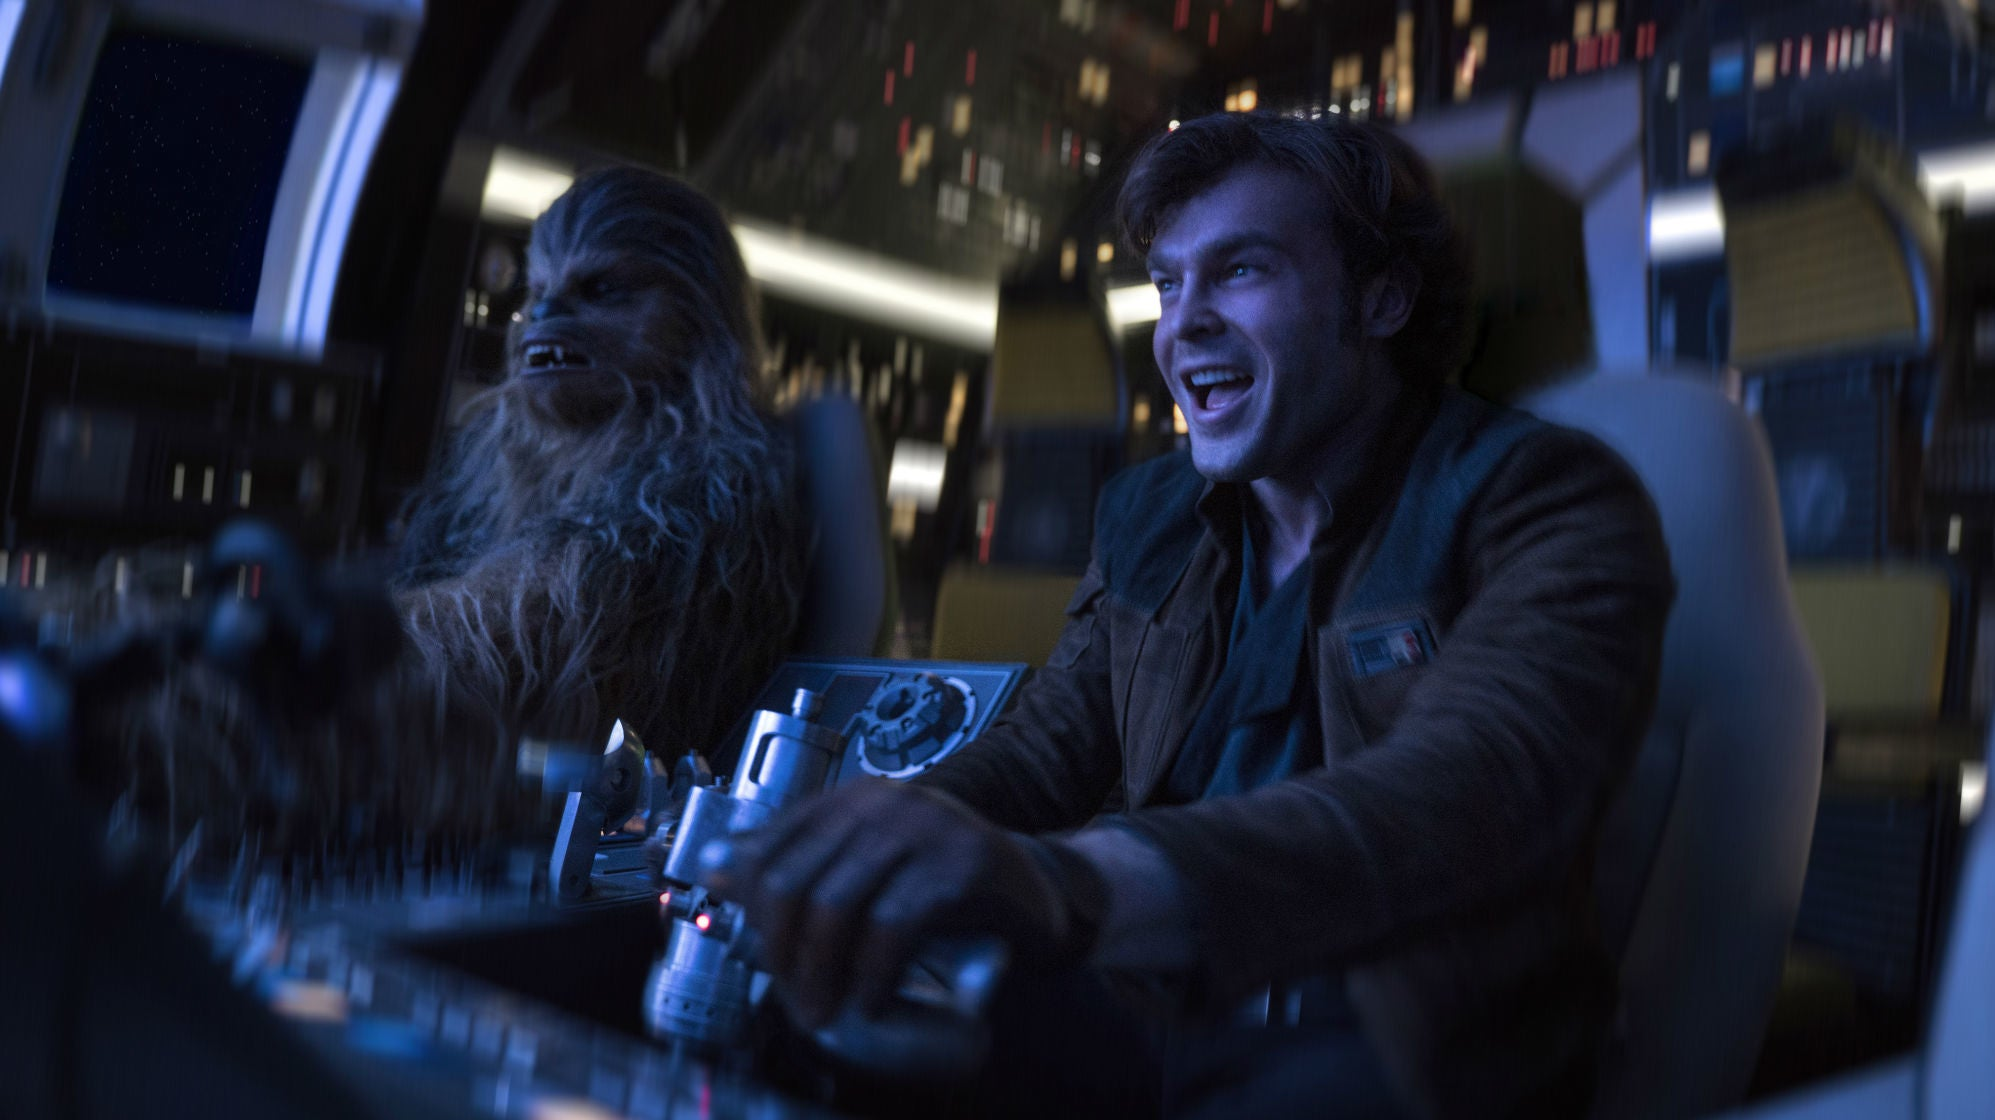 The Deleted Scenes Of Solo: A Star Wars Story, Ranked